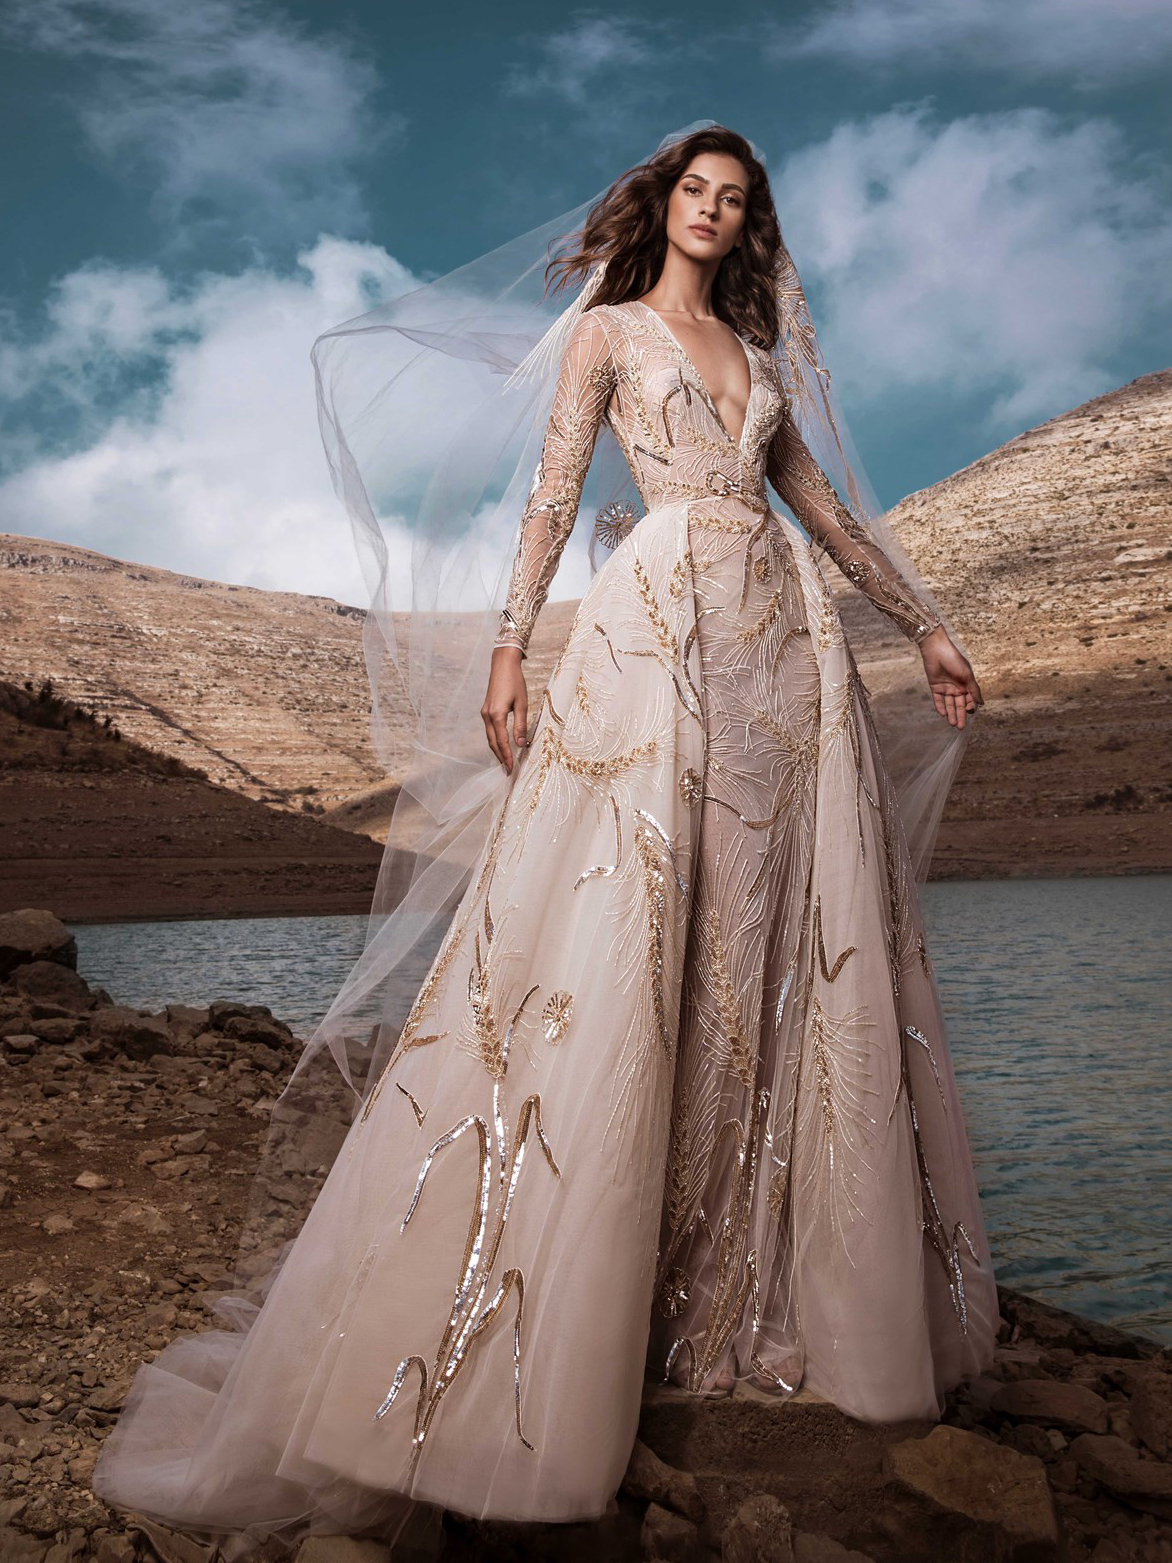 Bridal 1 Inspirated By Zuhair Murad Bridal Fall 2021